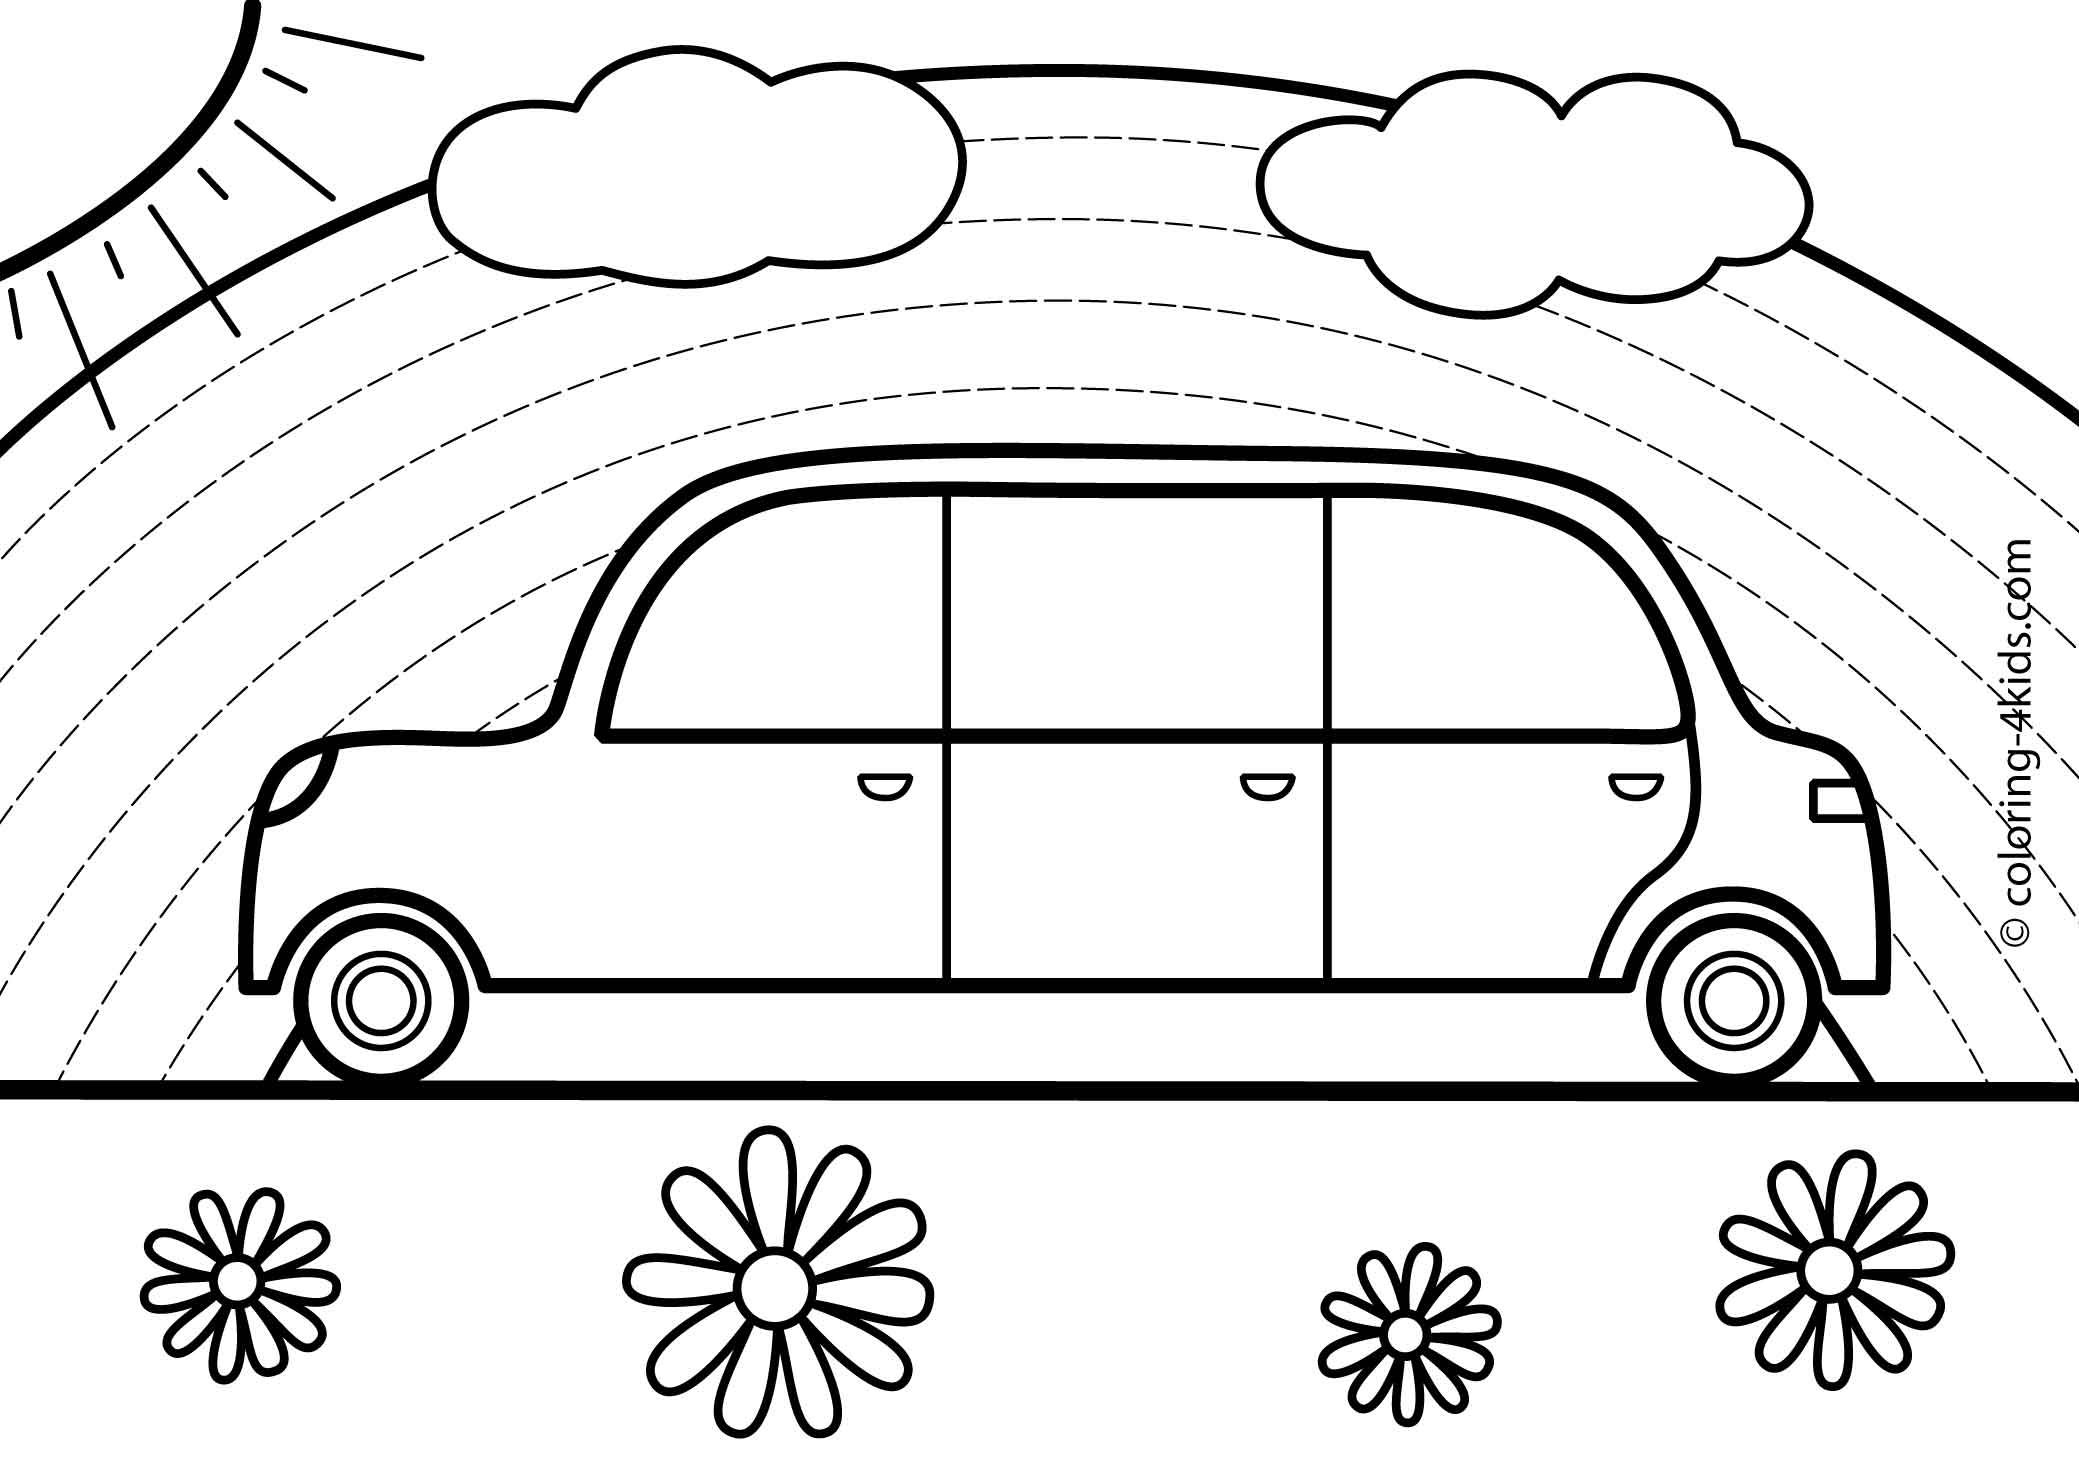 Rainbow Car Transportation Coloring Pages For Kids